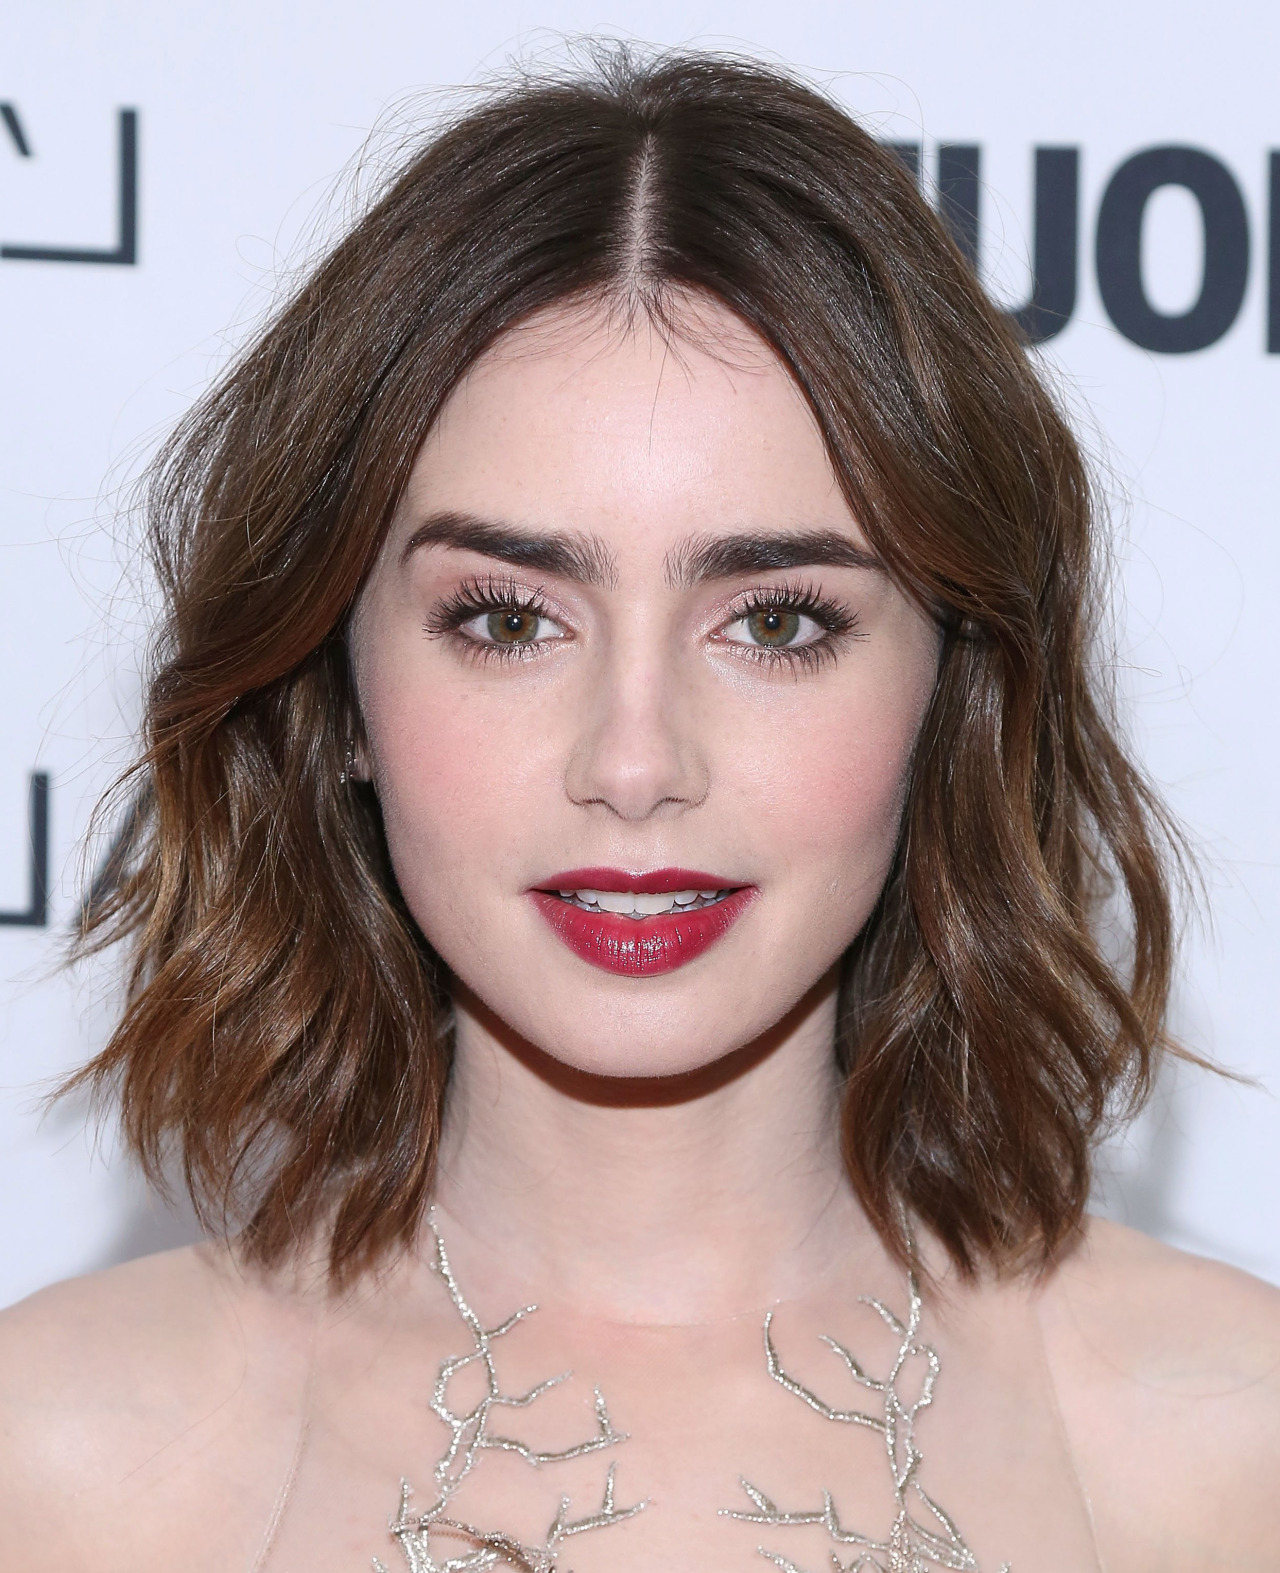 15 Of The Best Hairstyles For Medium Length Wavy Hair – The Skincare Pertaining To Latest Medium Haircuts For Wavy Hair (View 3 of 20)